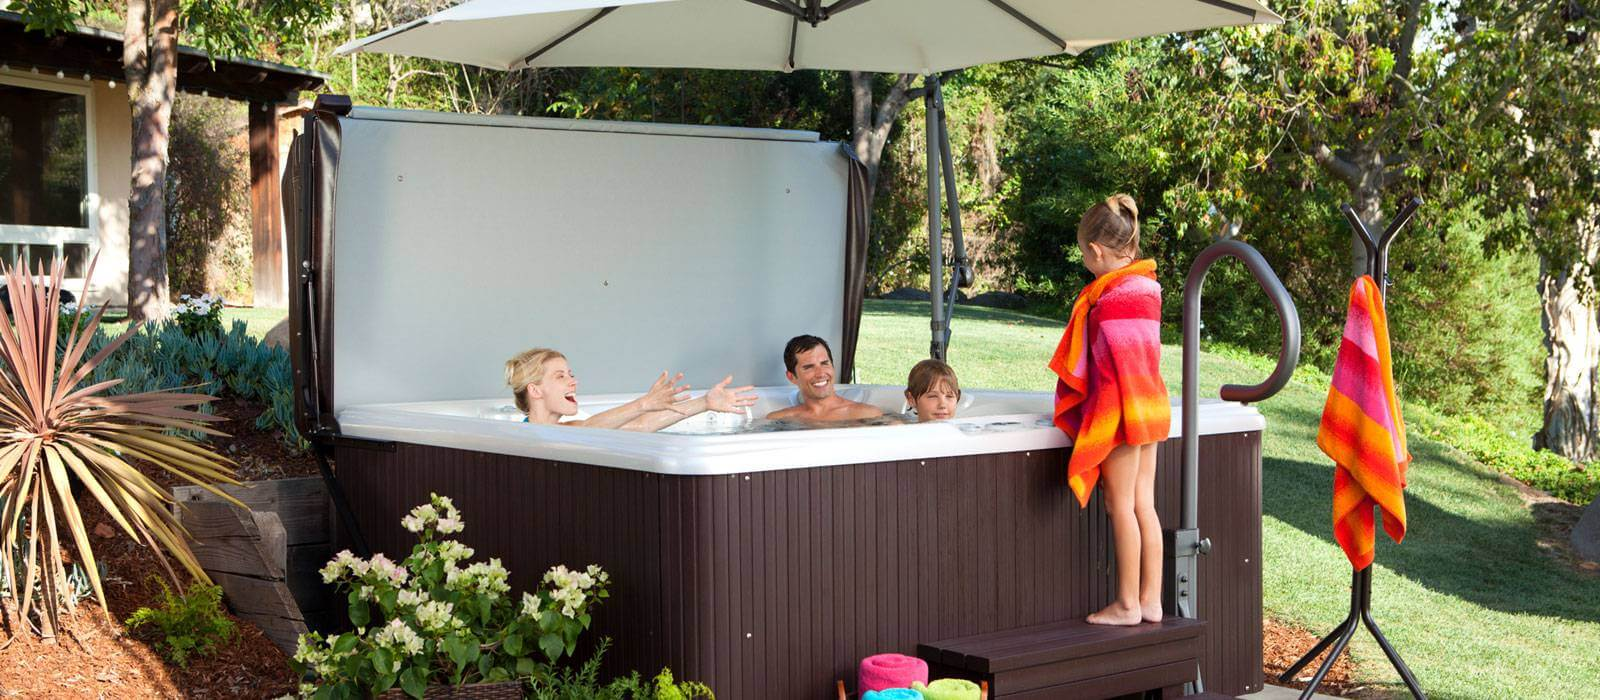 Hot Tub Design Ideas - Alaskaspa.com - The Waterworks